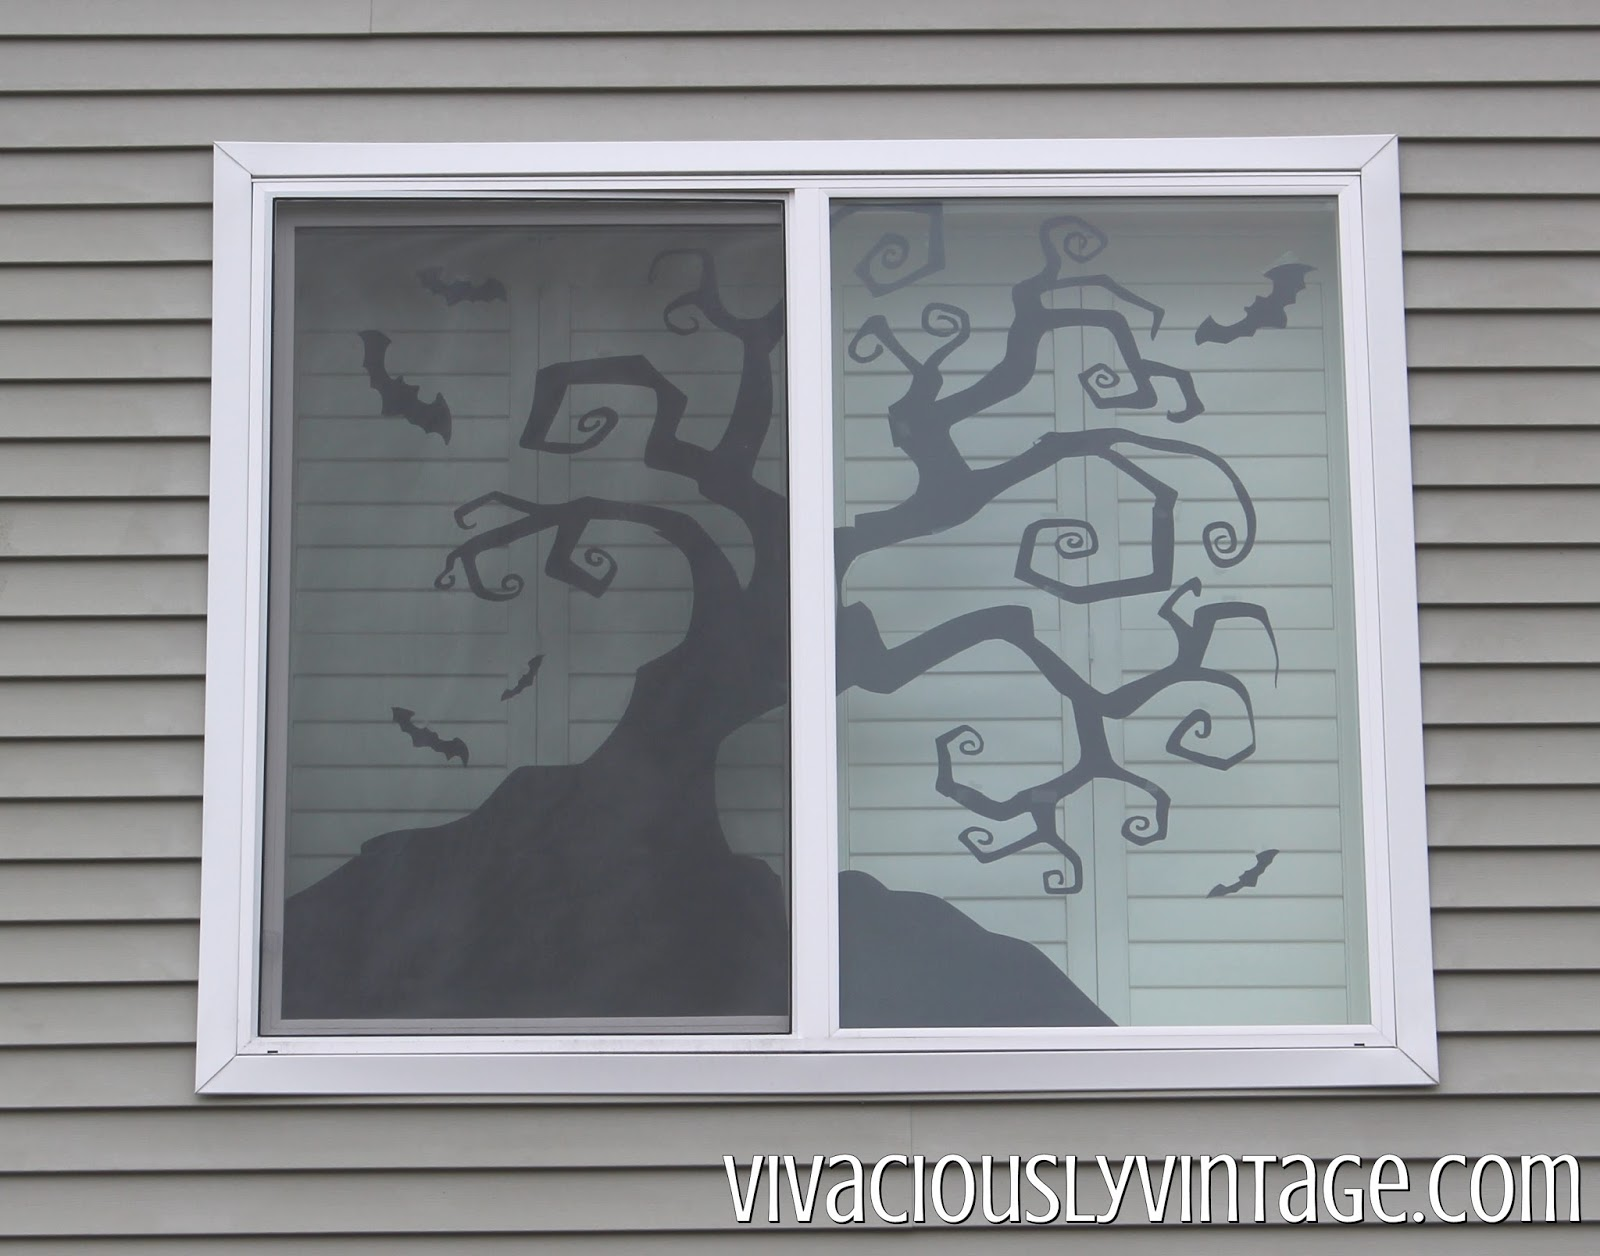 Want cheap Halloween decor? Make your own creepy Halloween window silhouettes using these FREE templates! Link to a full tutorial in the post! Pin now to make later!